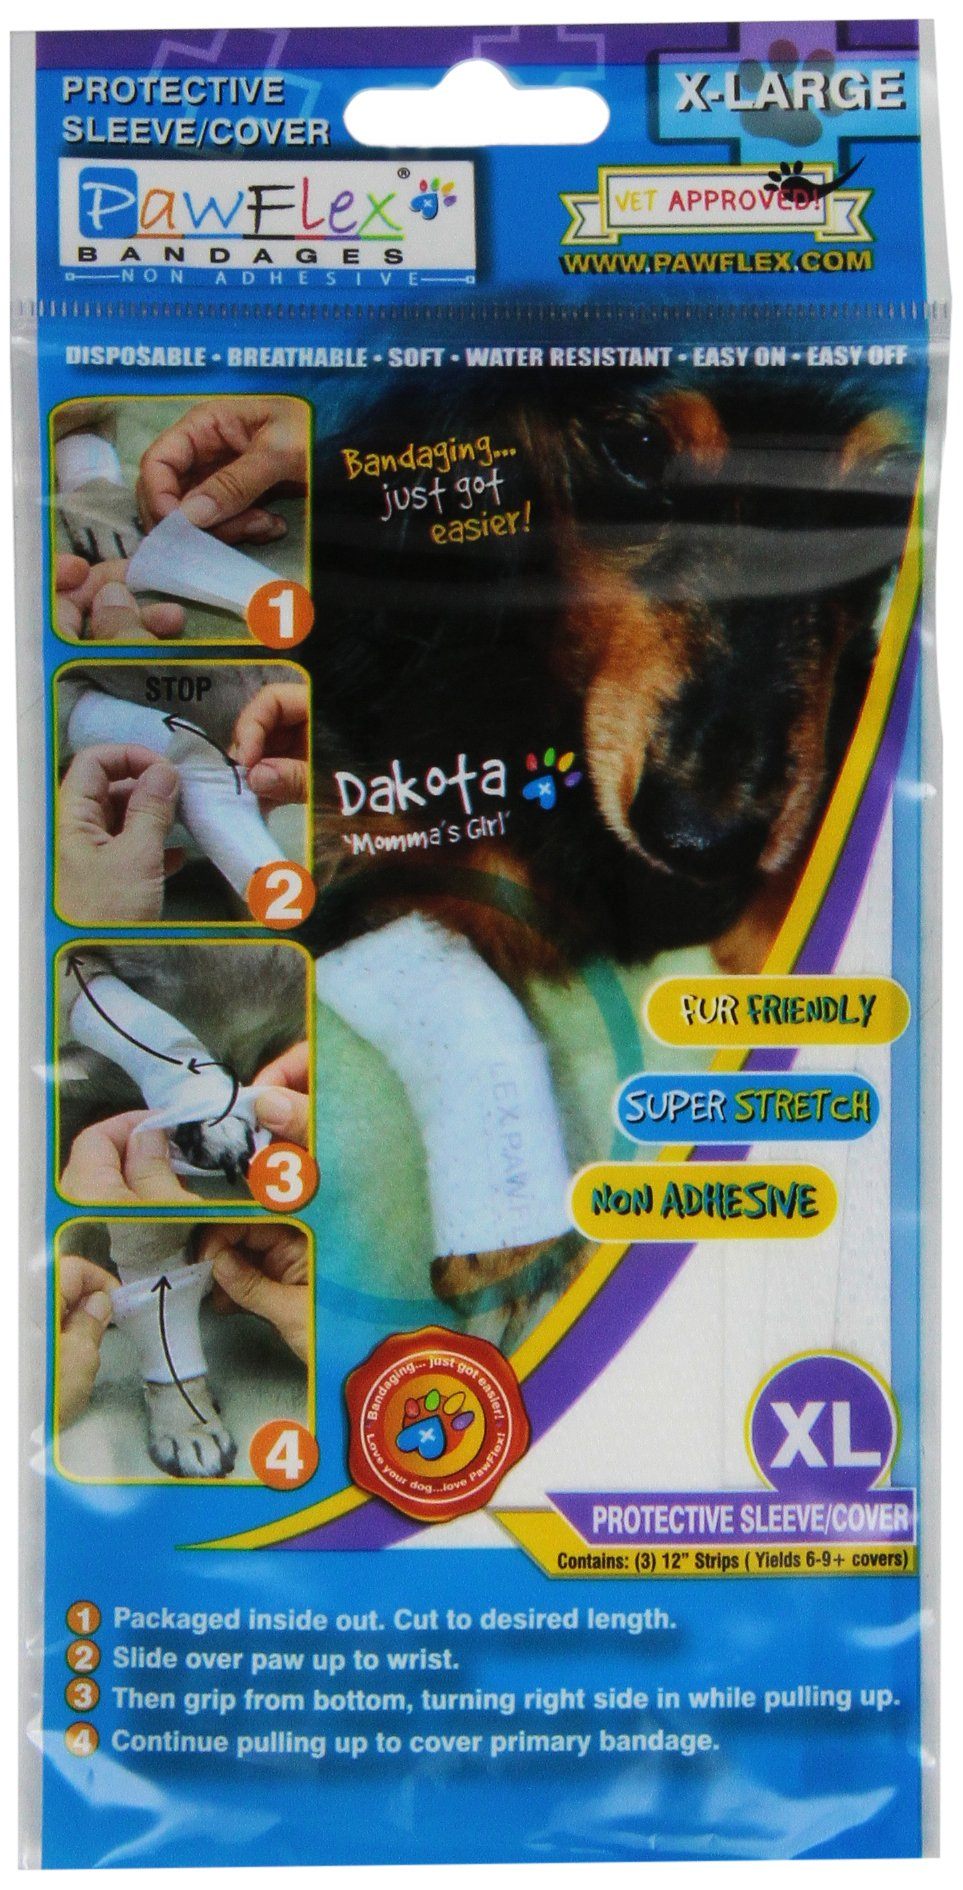 Pawflex Bandages Non-Adhesive Disposable Washable and Reusable Protective Cov...